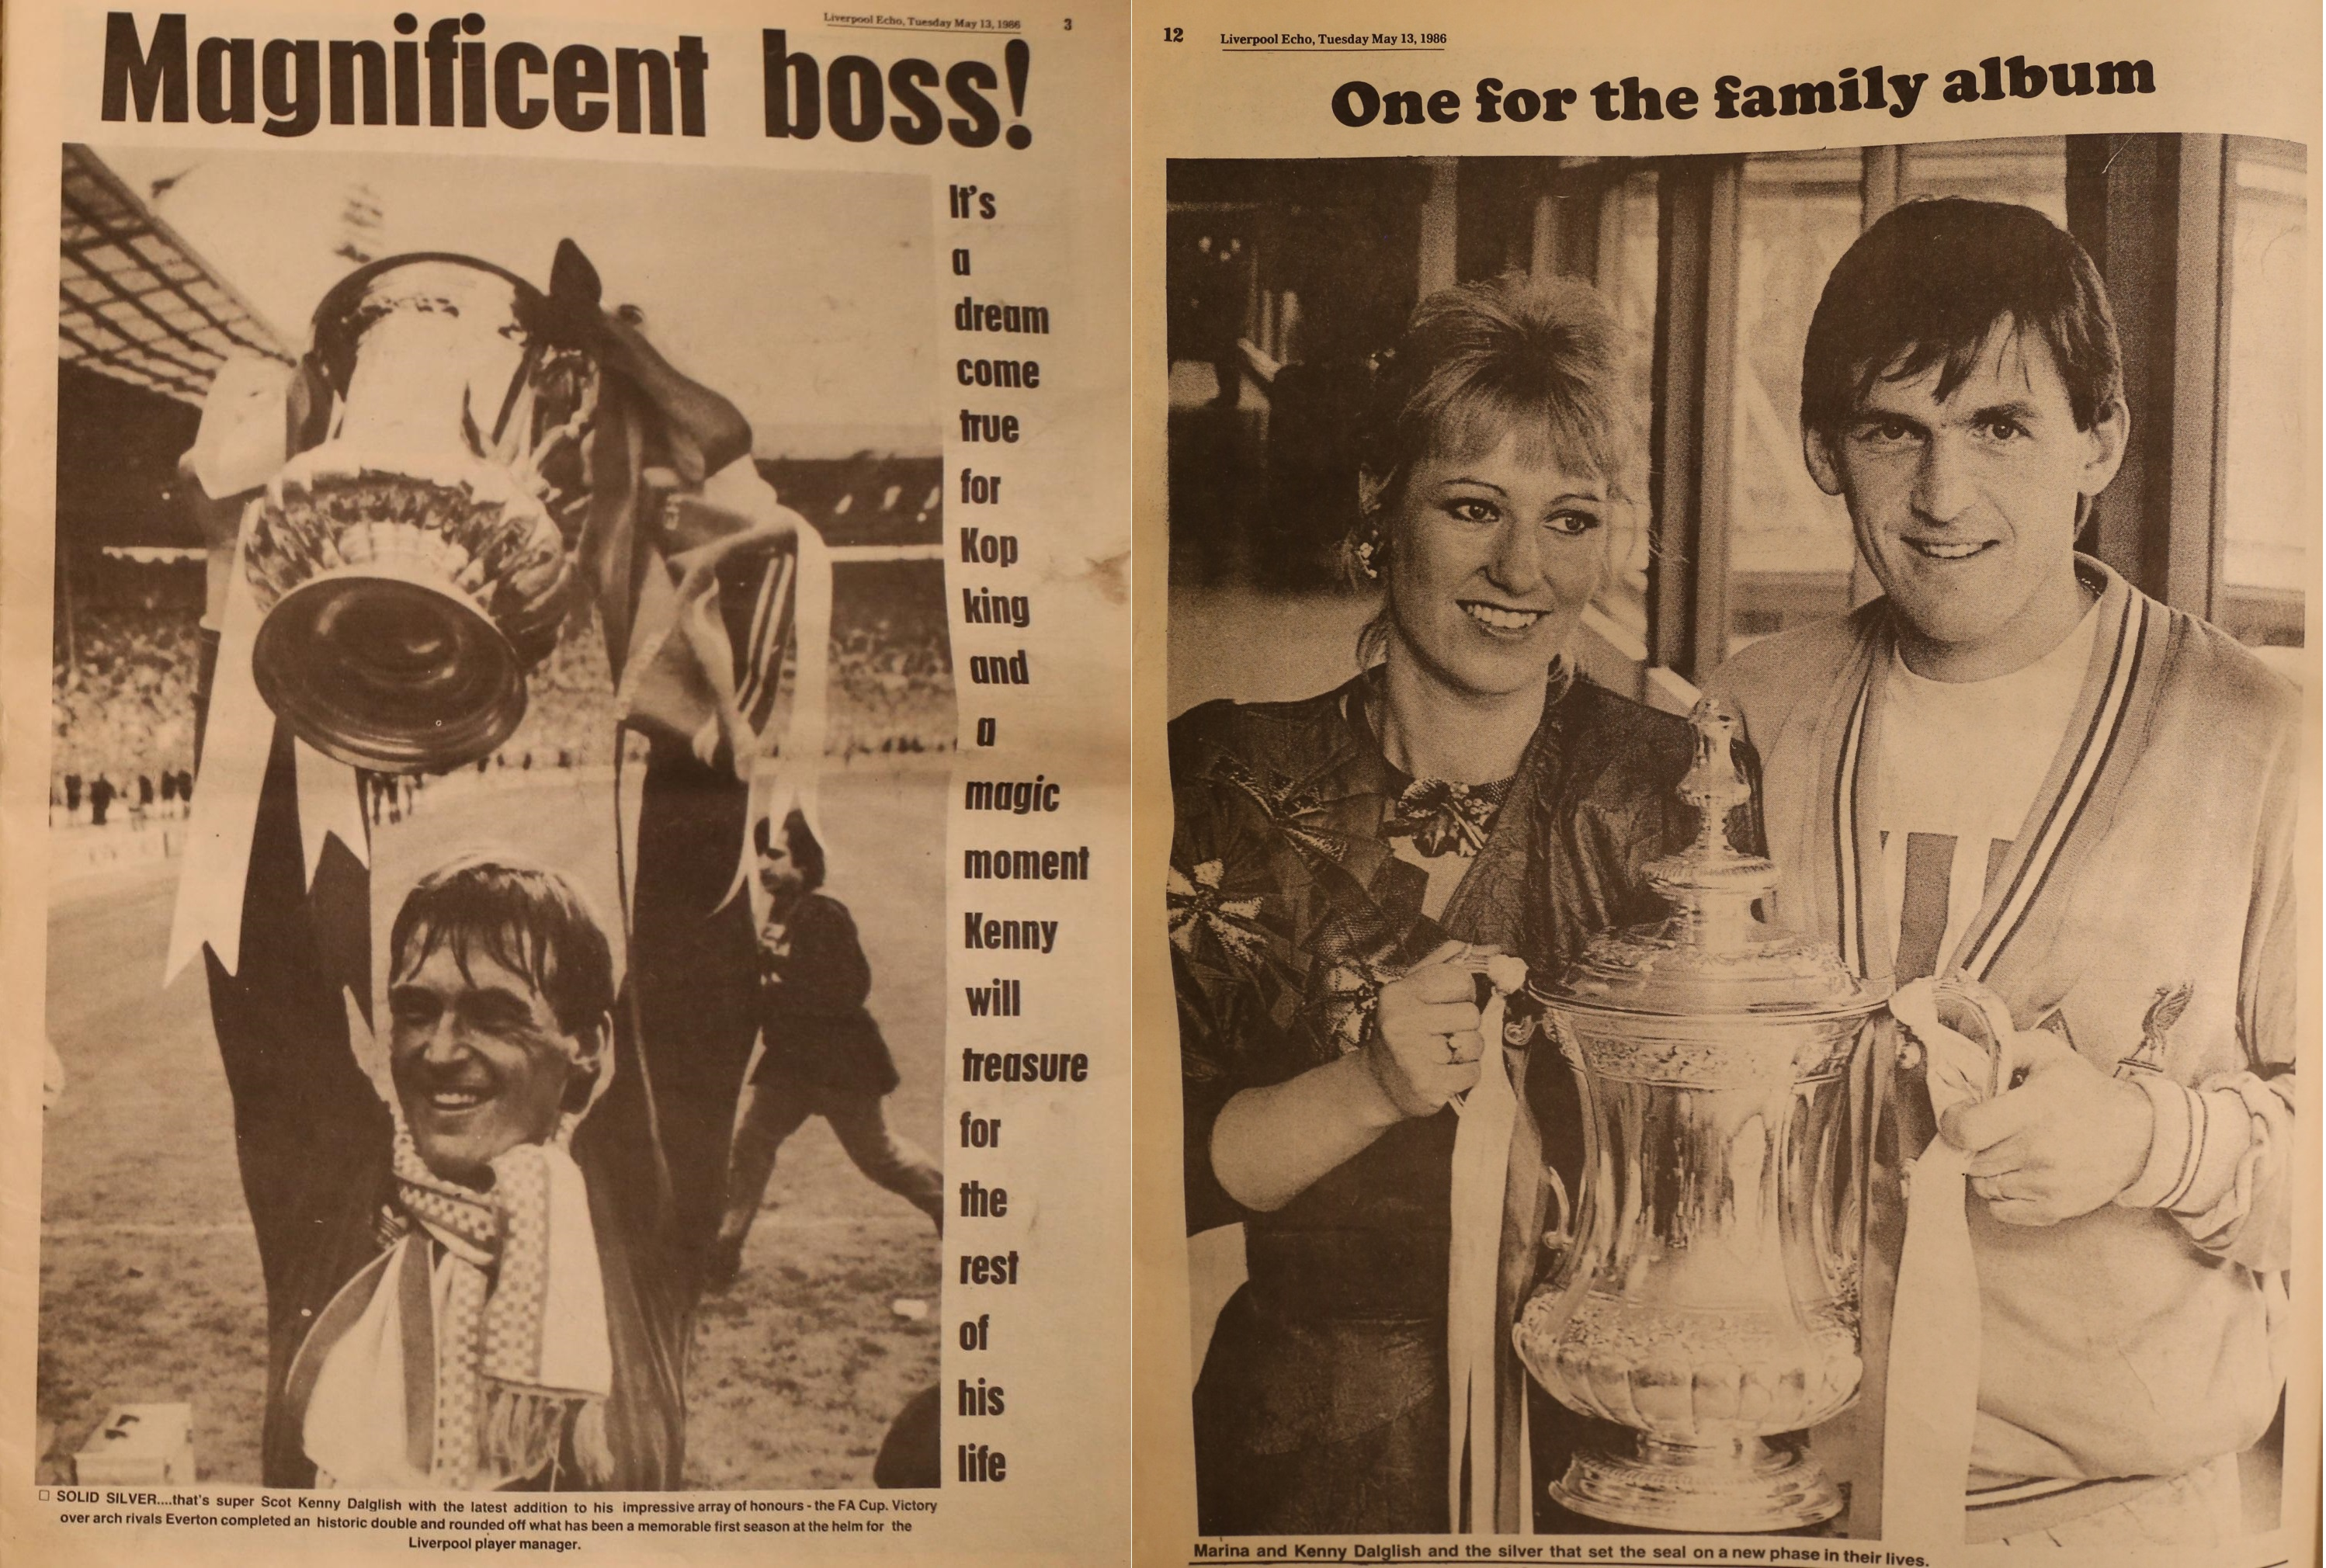 One for the family album - Liverpool Echo 13 May 1986